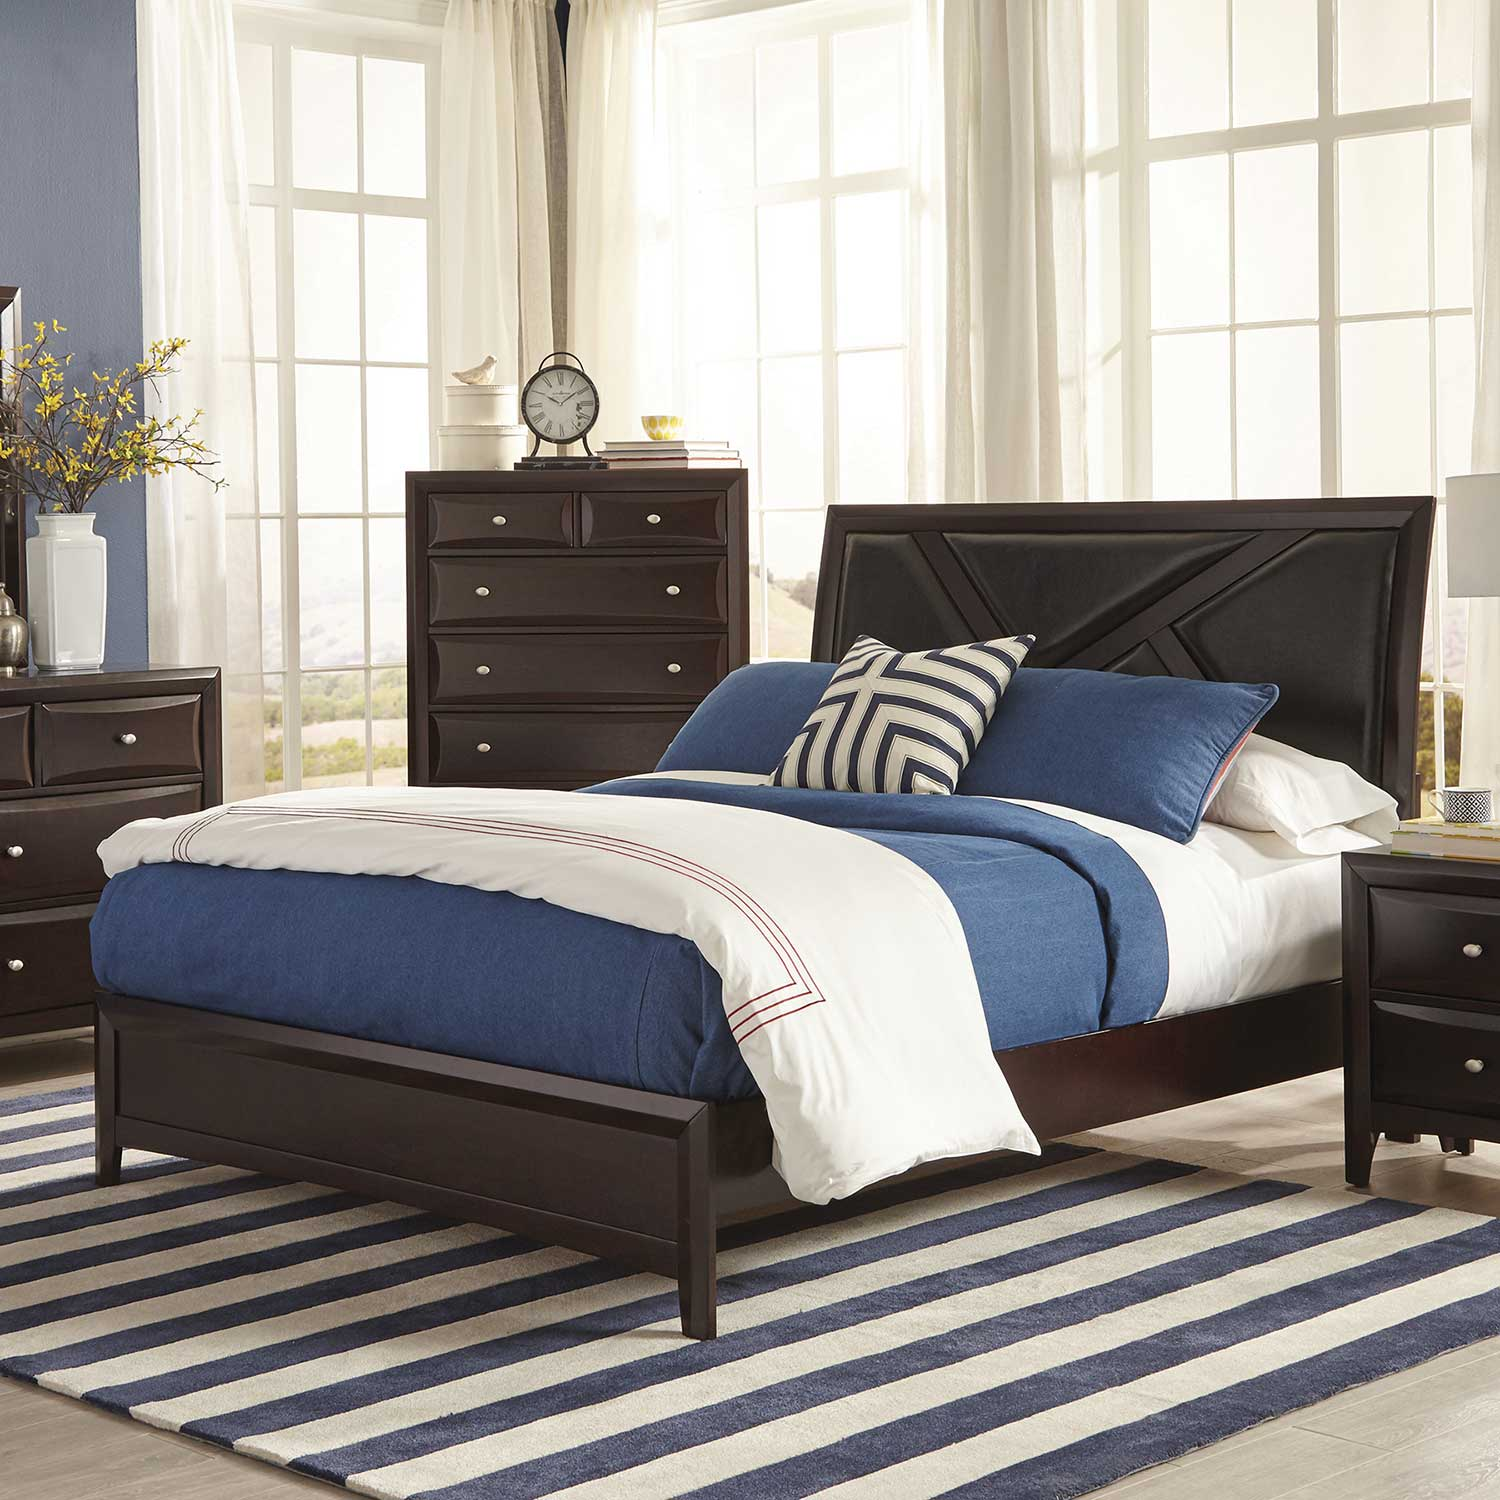 Coaster Rossville Upholstered Bed - Cappuccino